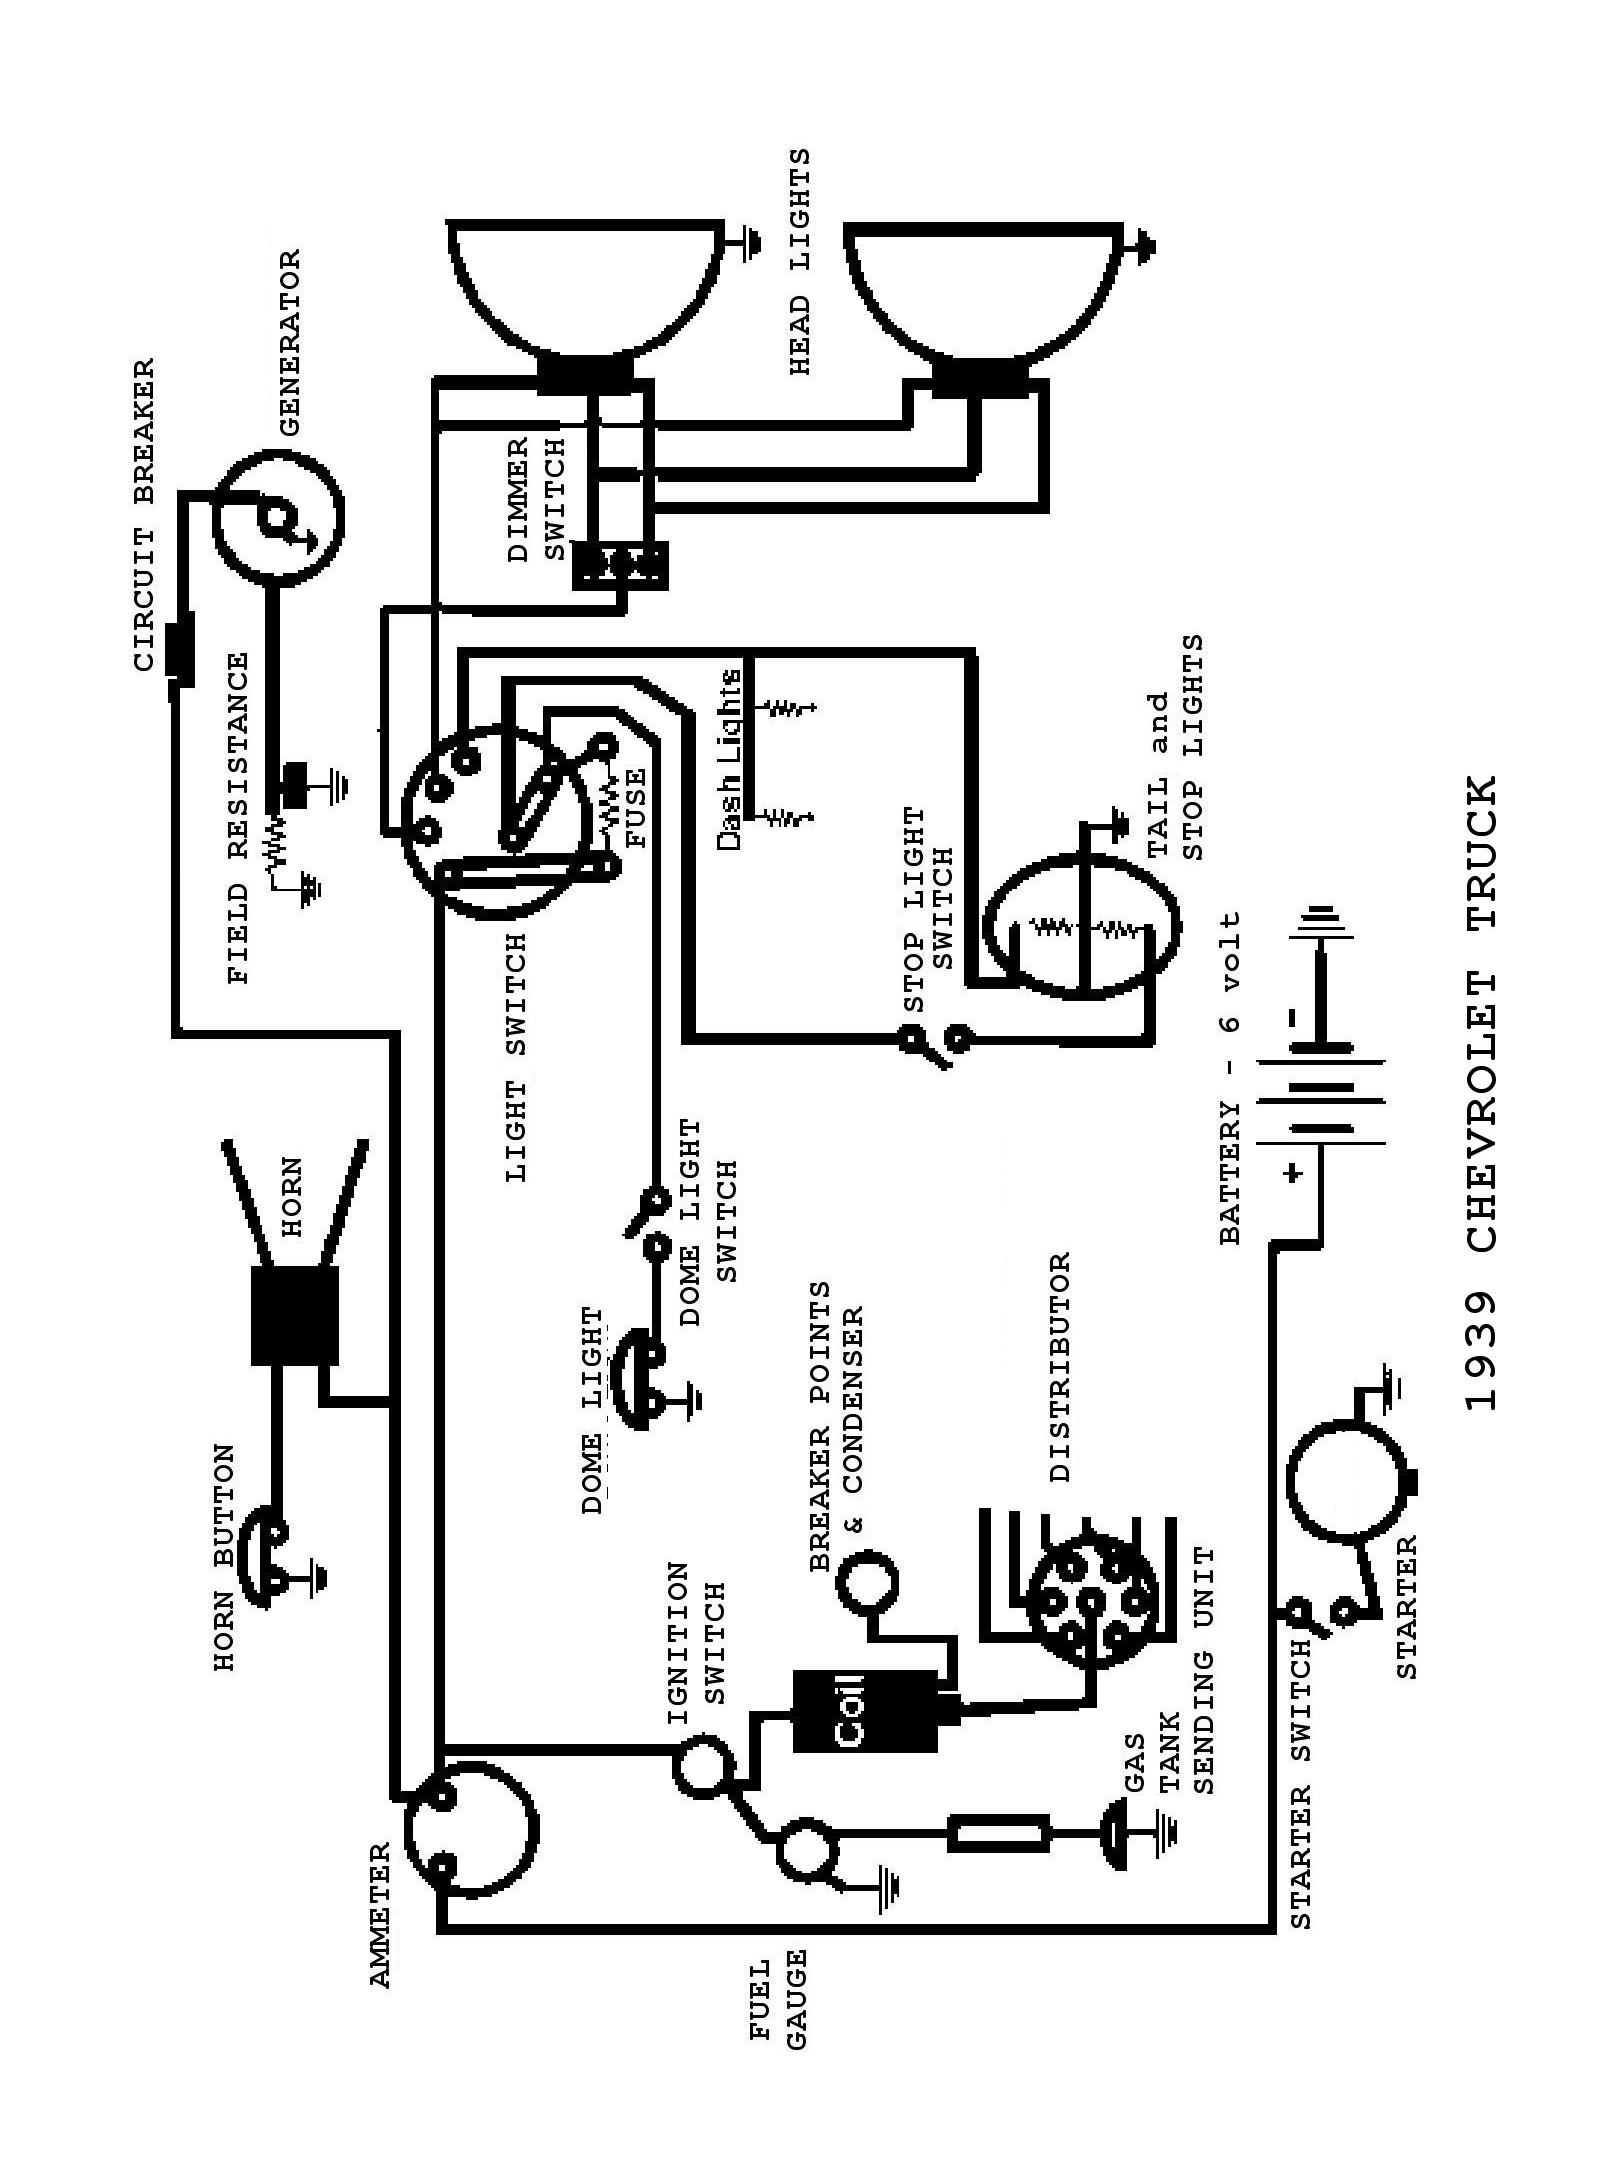 1929 model a pick up wiring diagram